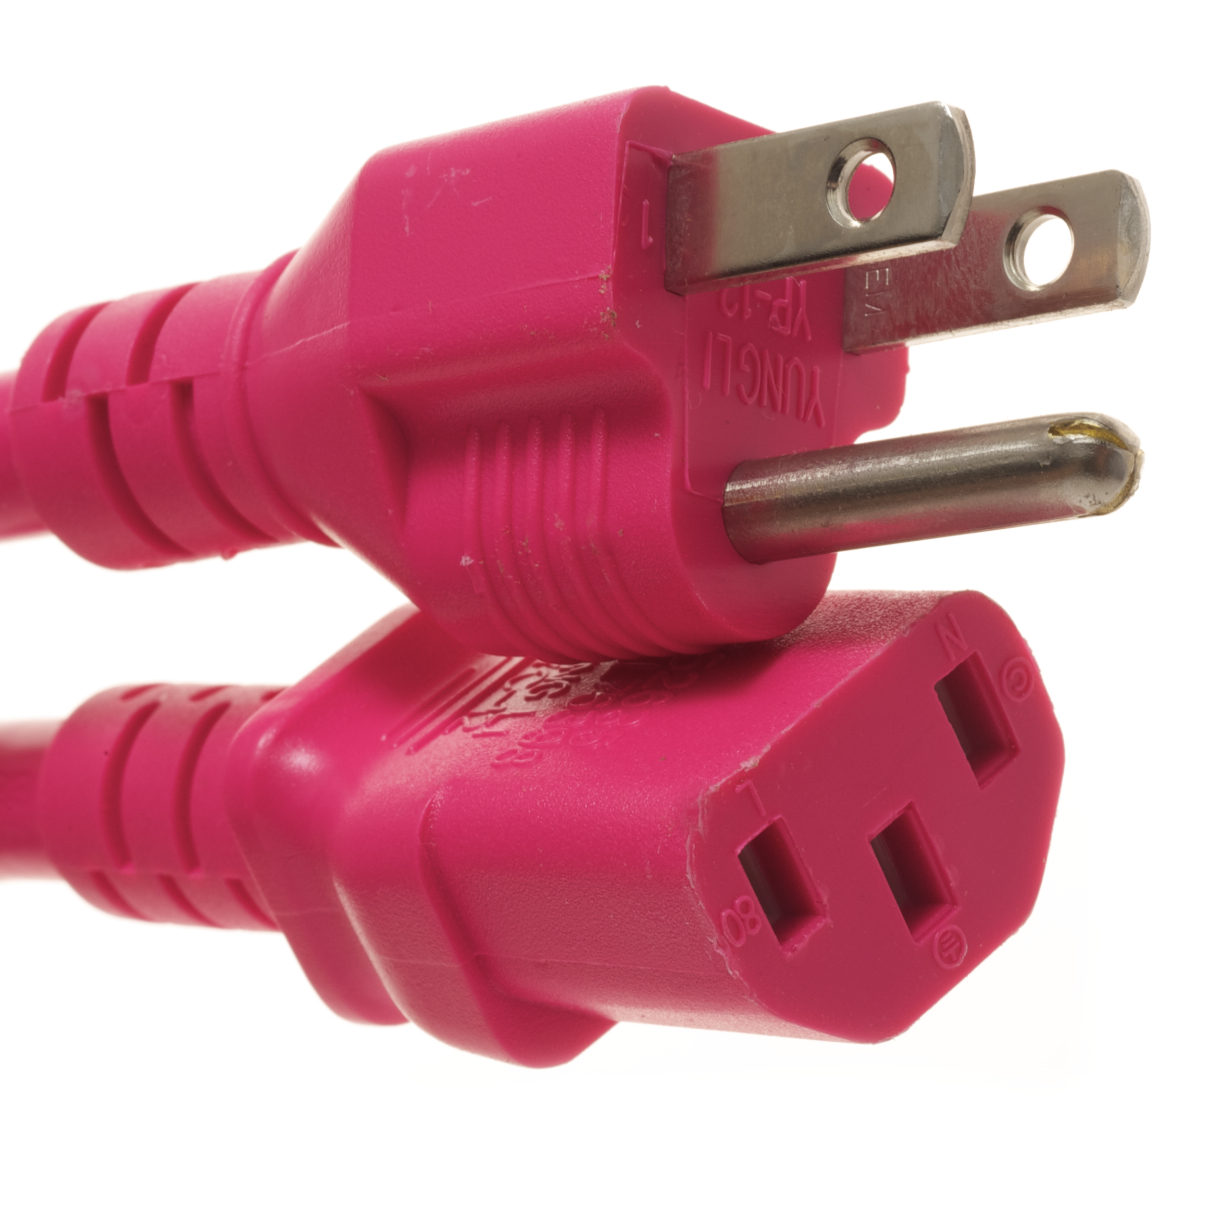 5-15P TO C13  PC to AC Outlet 15 Amp Power Cord- Pink